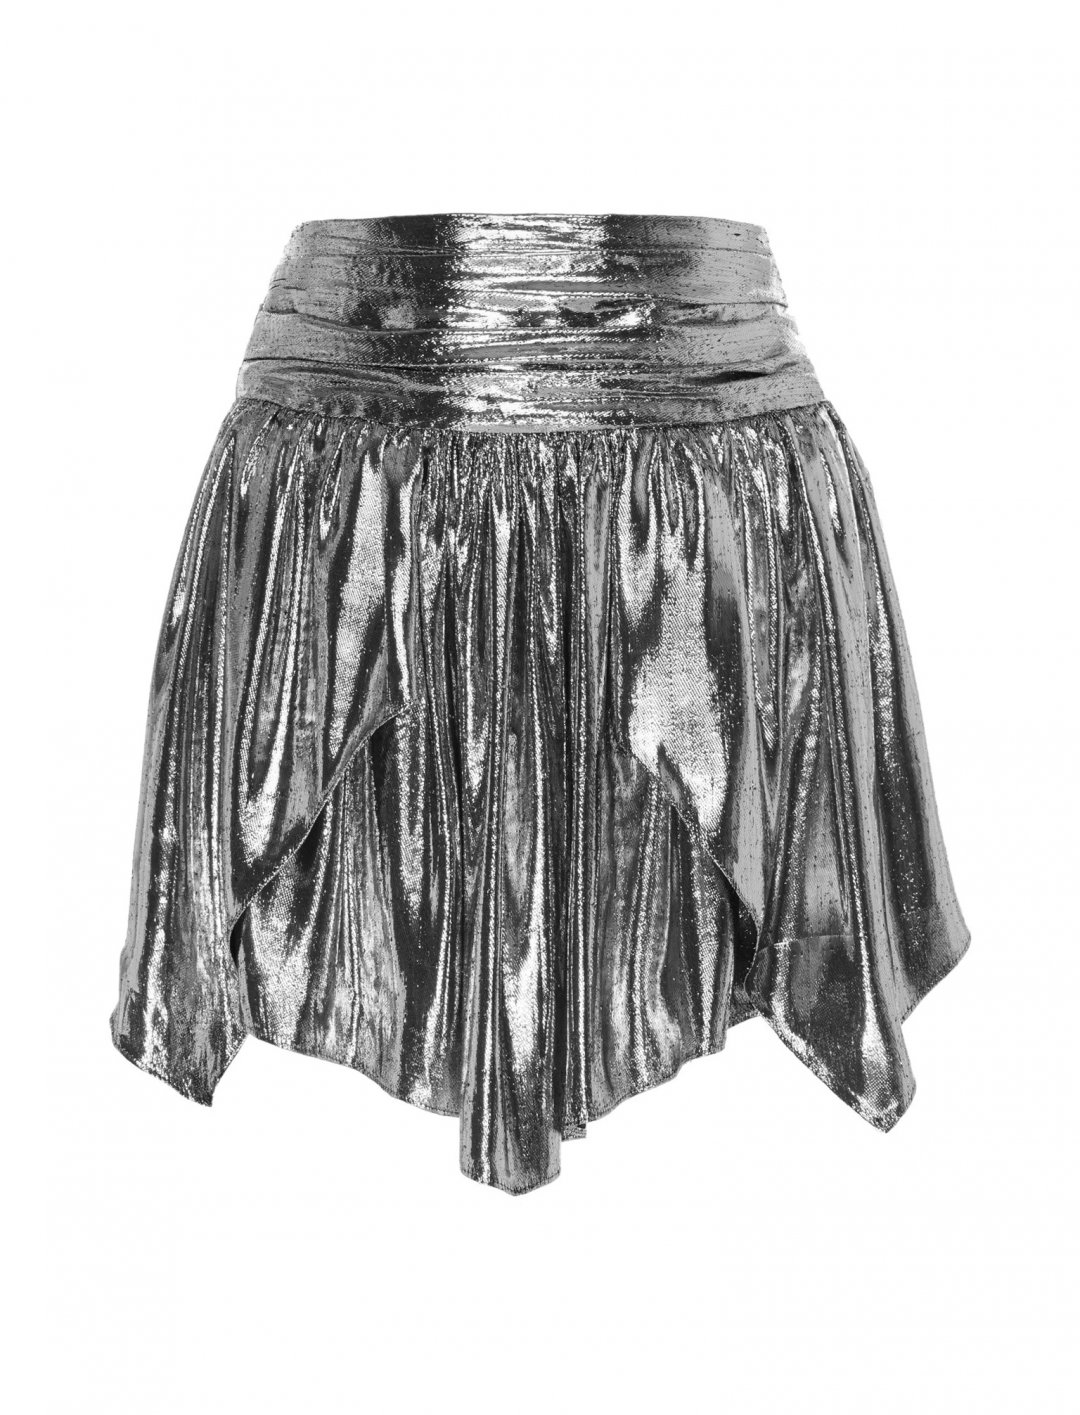 "Miley Cyrus' Skirt {""id"":5,""product_section_id"":1,""name"":""Clothing"",""order"":5} Isabel Marant"